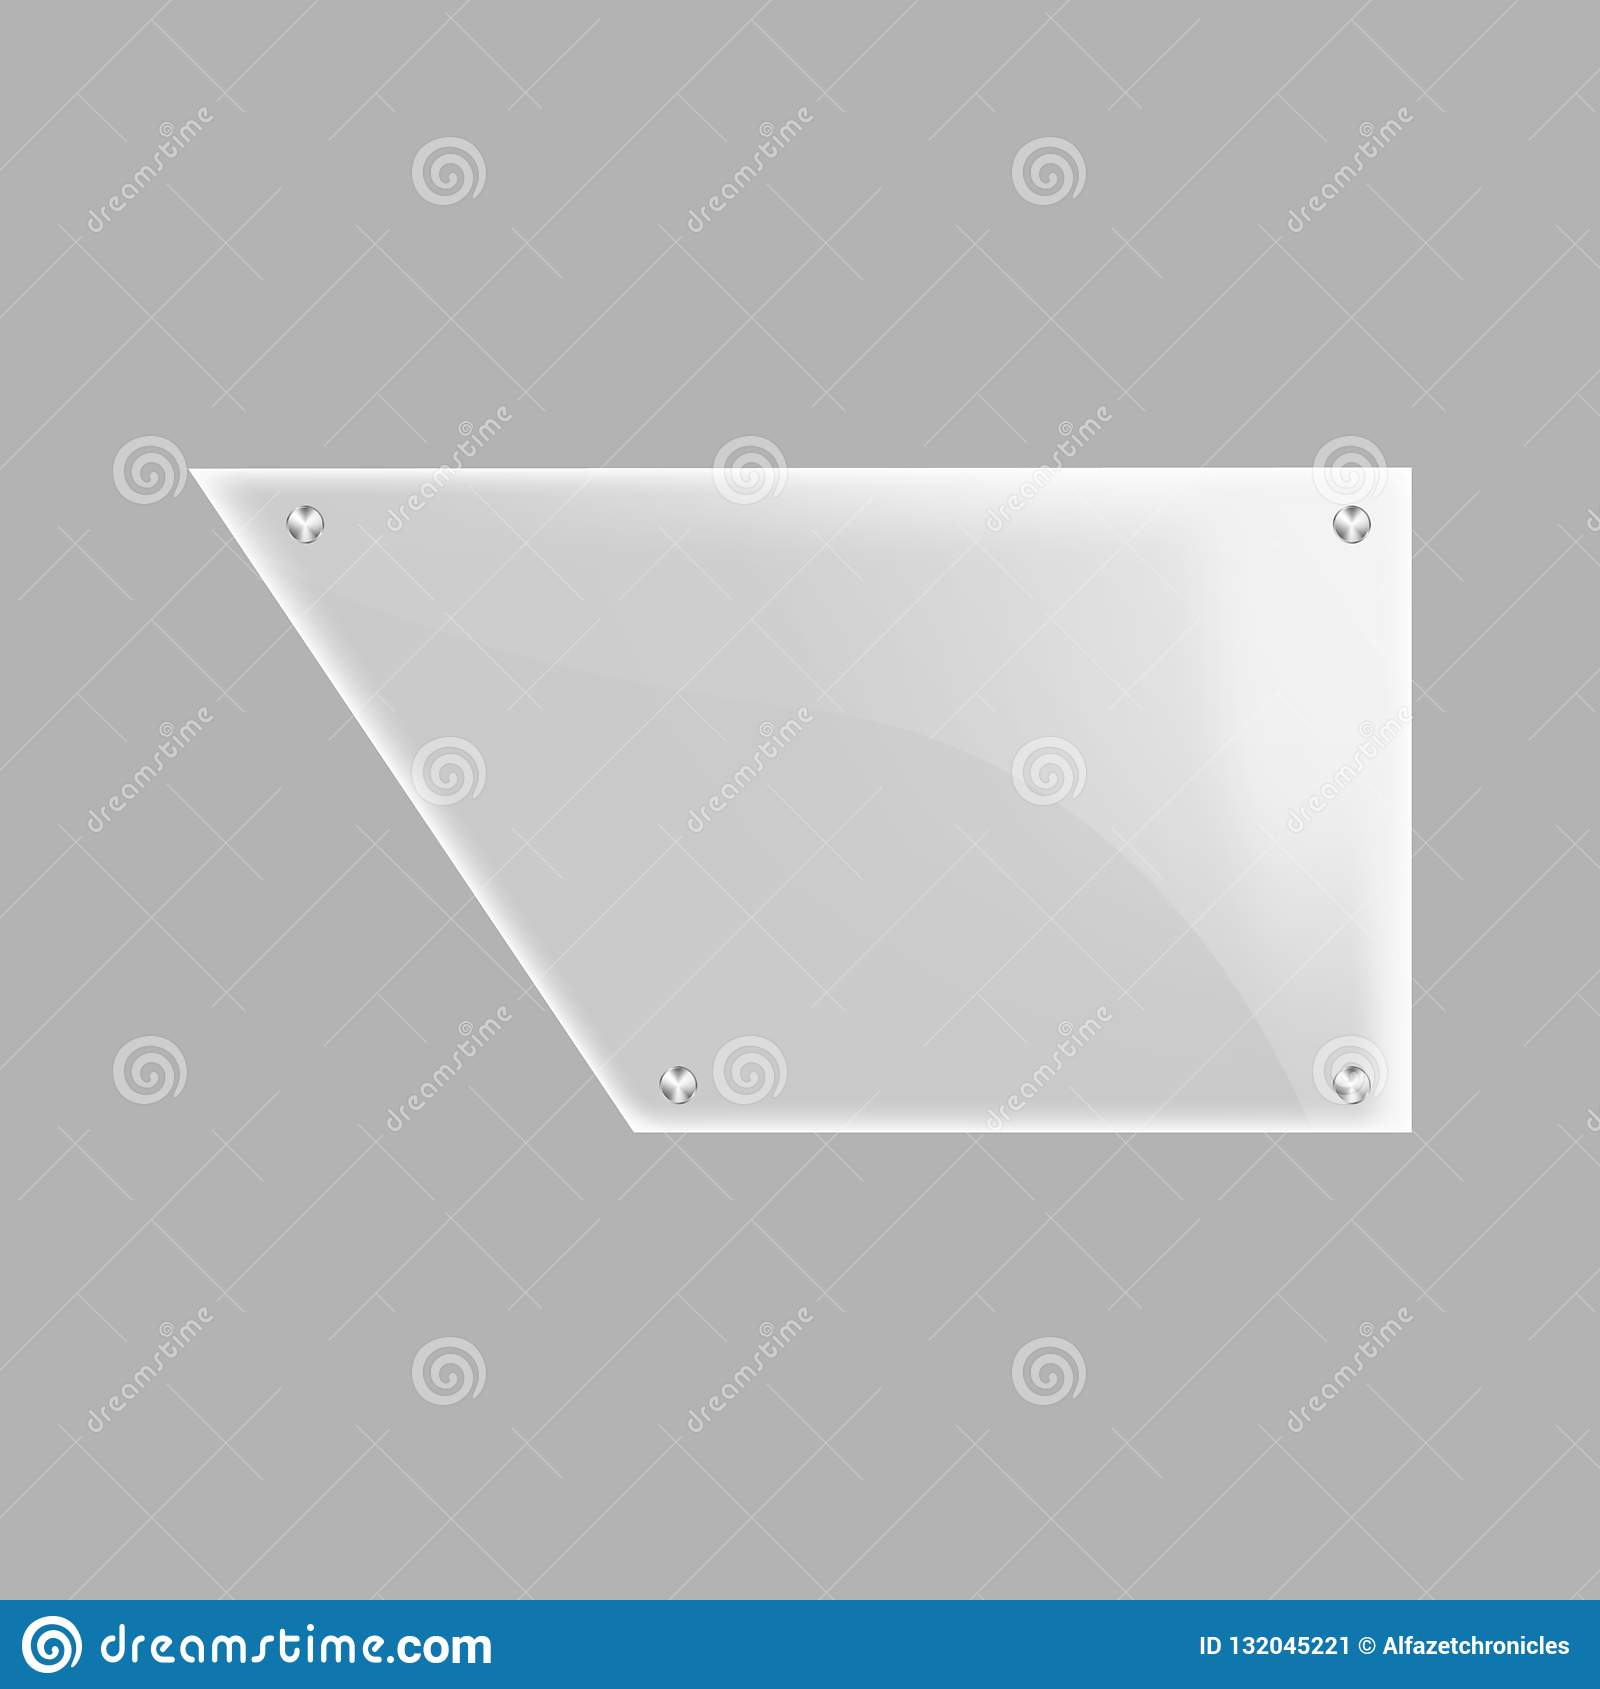 Blank Glass Plate Isolated Icon Stock Illustration